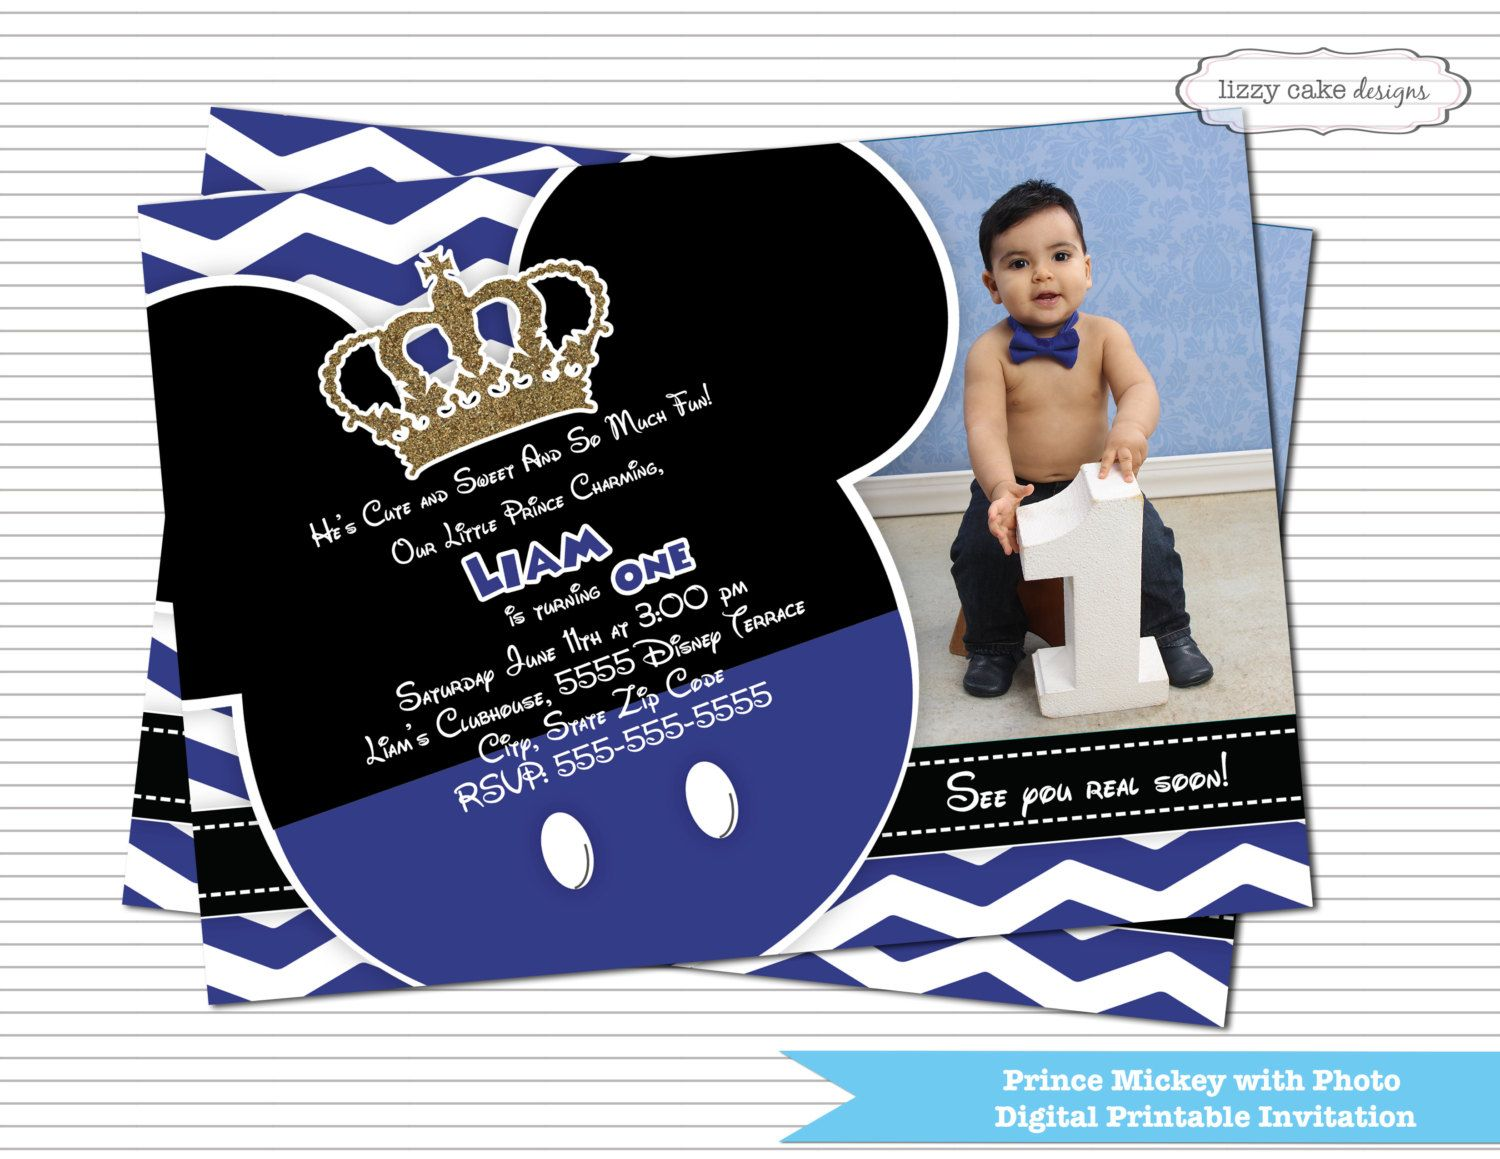 Prince Mickey Mouse Birthday Invitation Blue & Gold with Photo ...